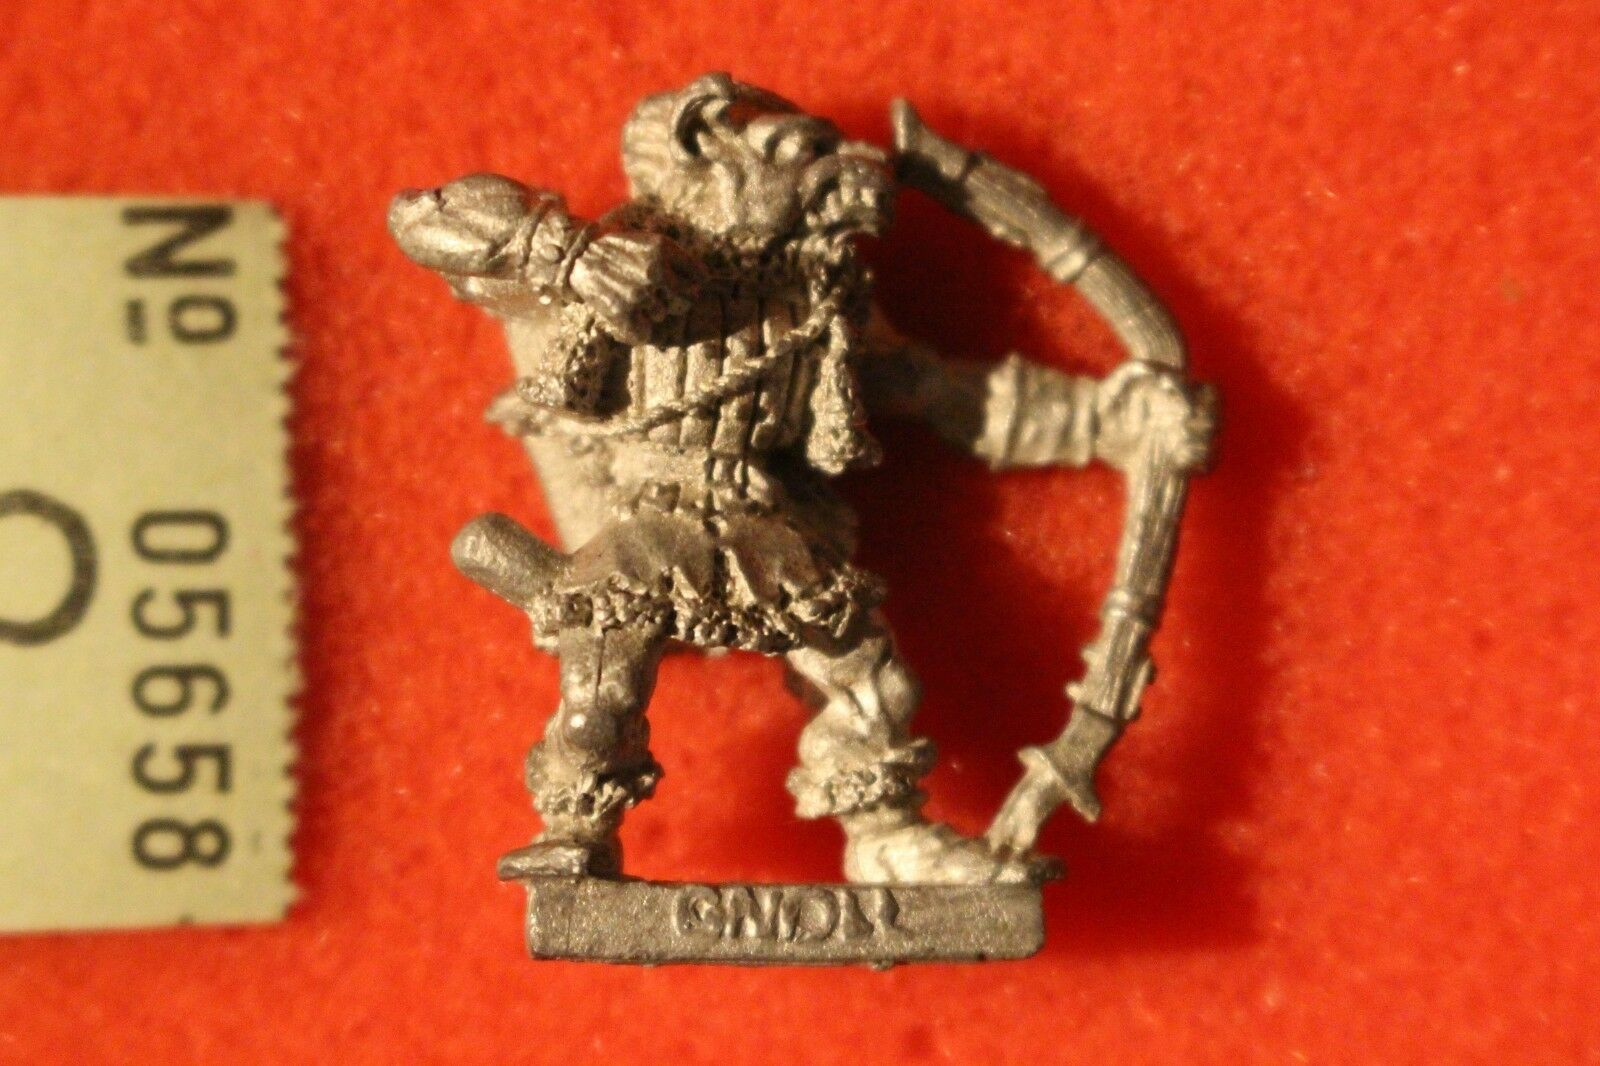 Games Workshop Citadel ADD55 Gnolls Warhammer Advanced Dungeons and Dragons E5